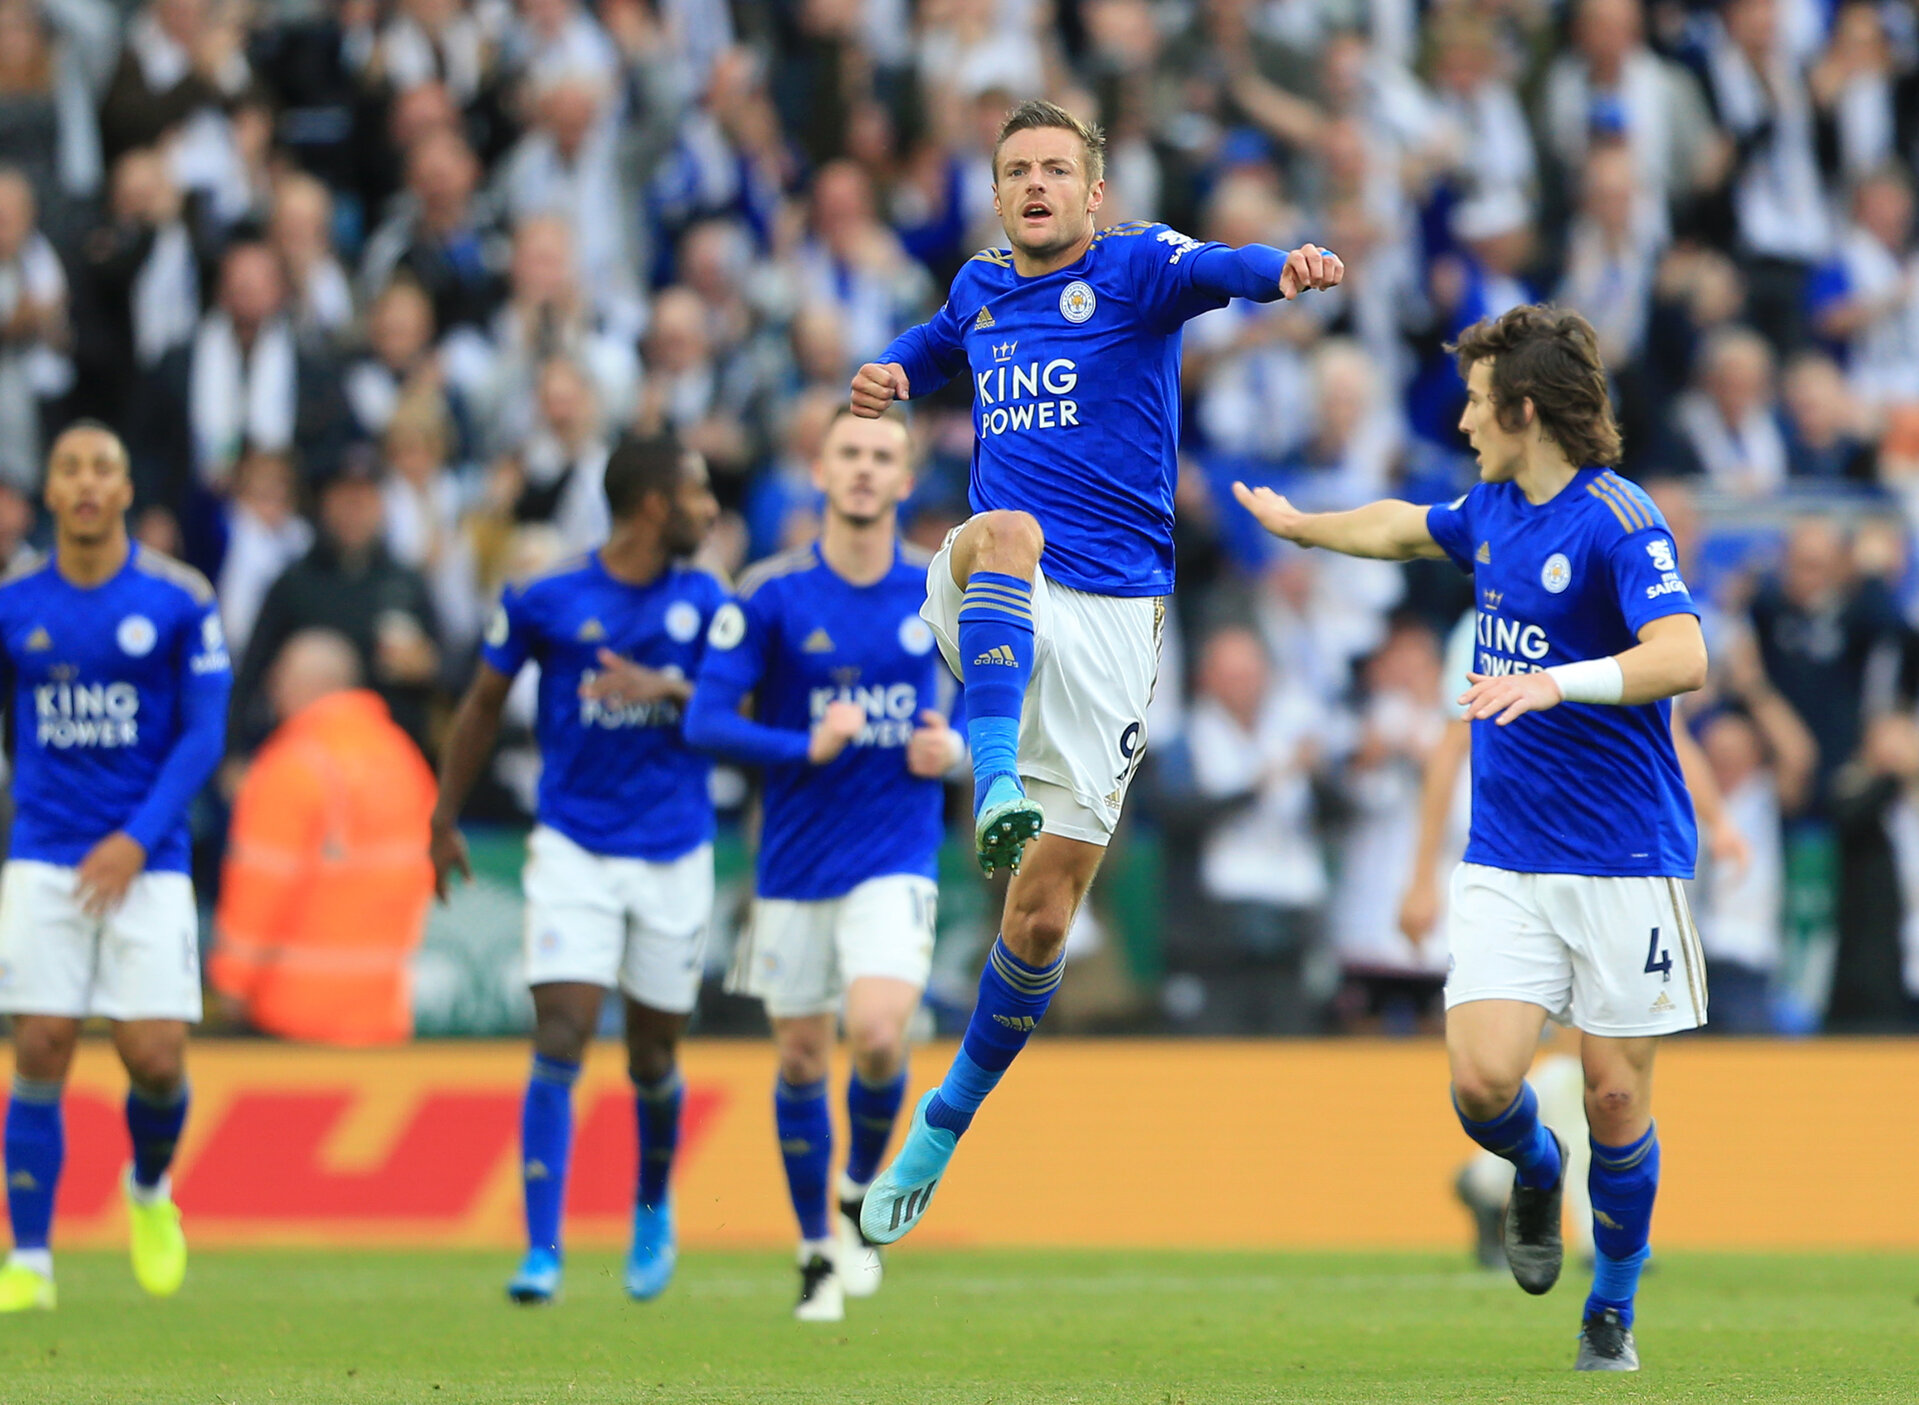 LEICESTER, ENGLAND - OCTOBER 19: Jamie Vardy of Leicester City celebrates after scoring his team's first goal during the Premier League match between Leicester City and Burnley FC at The King Power Stadium on October 19, 2019 in Leicester, United Kingdom. (Photo by Stephen Pond/Getty Images)